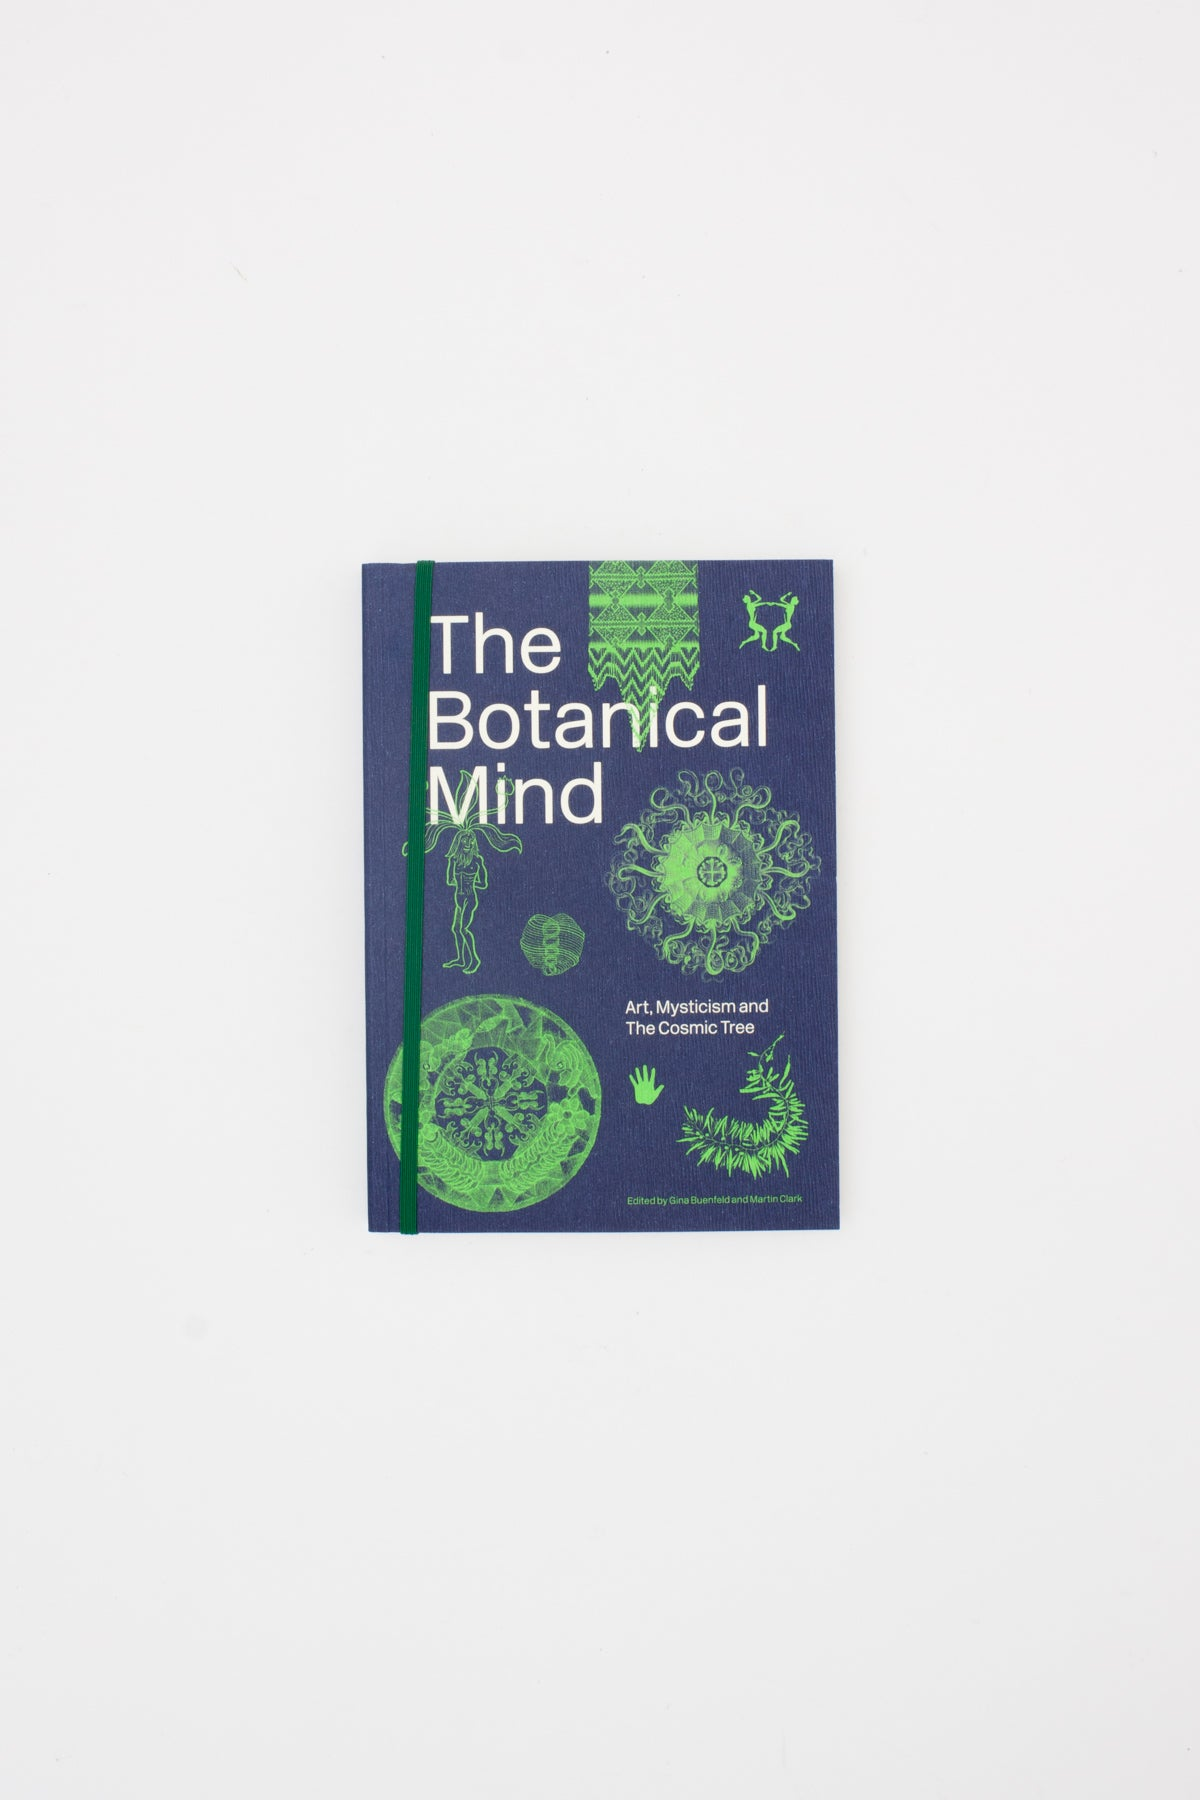 The Botanical Mind: Art, Mysticism and The Cosmic Tree